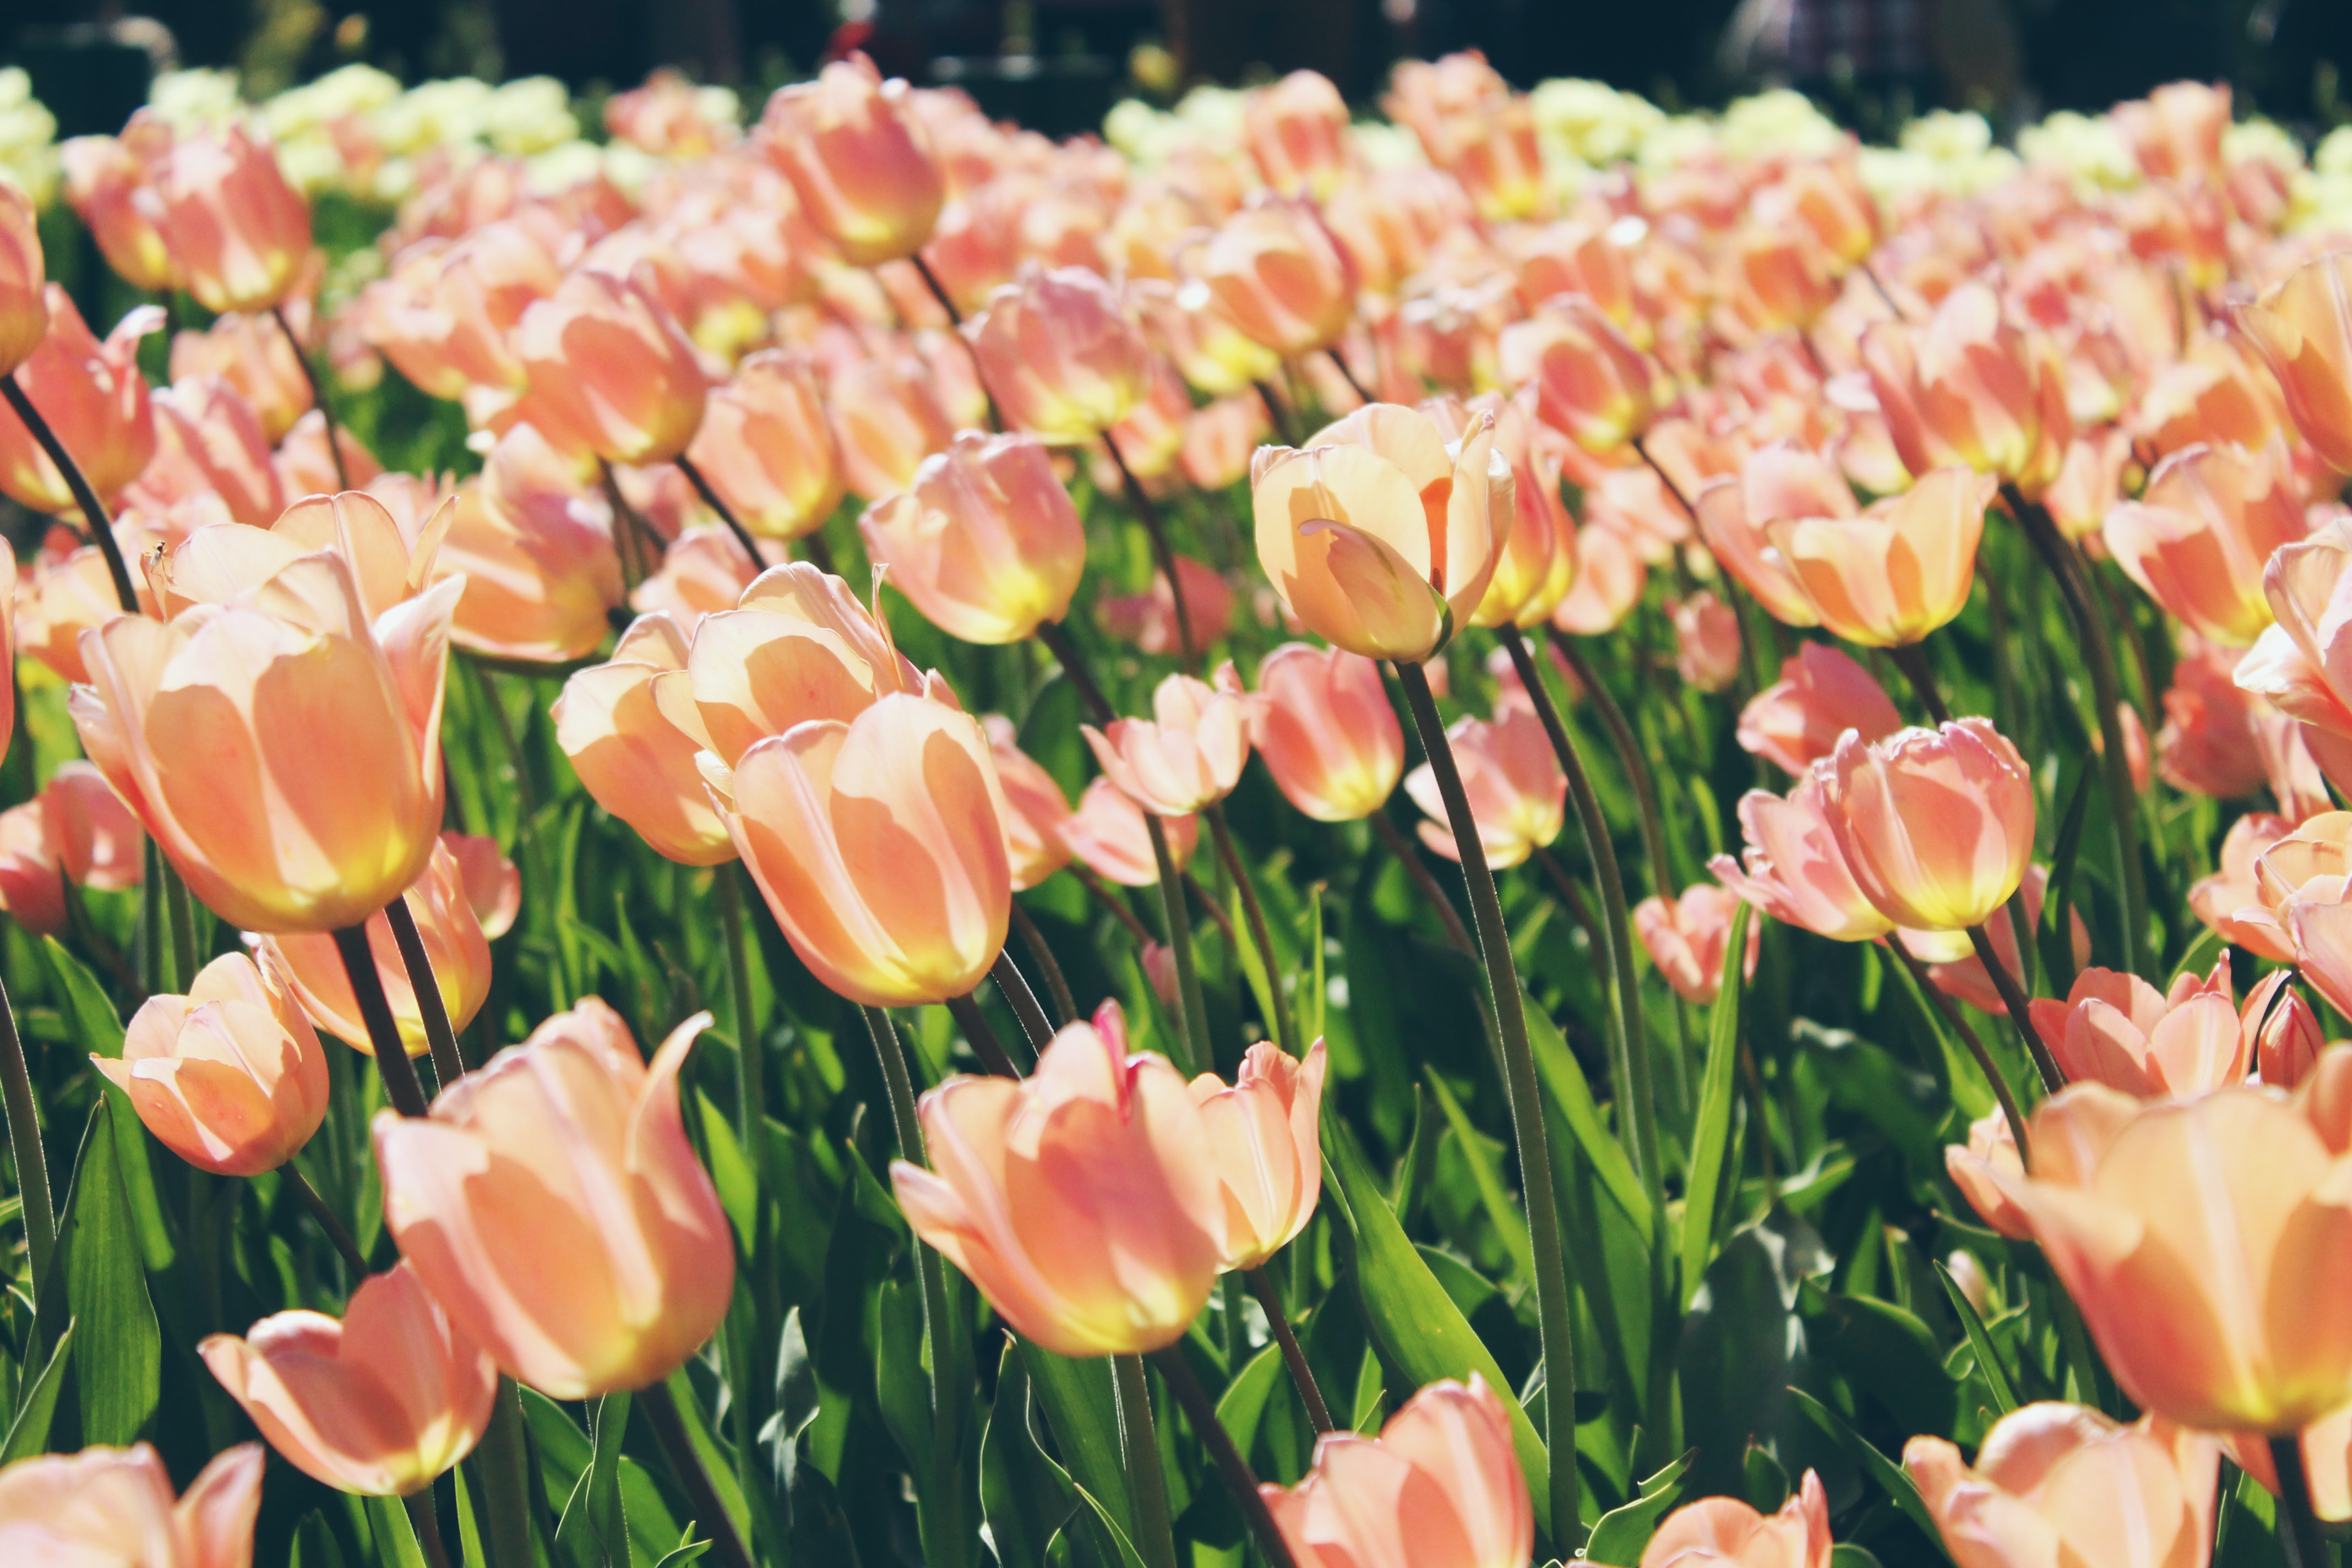 A large grouping of light red tulips in sunlight